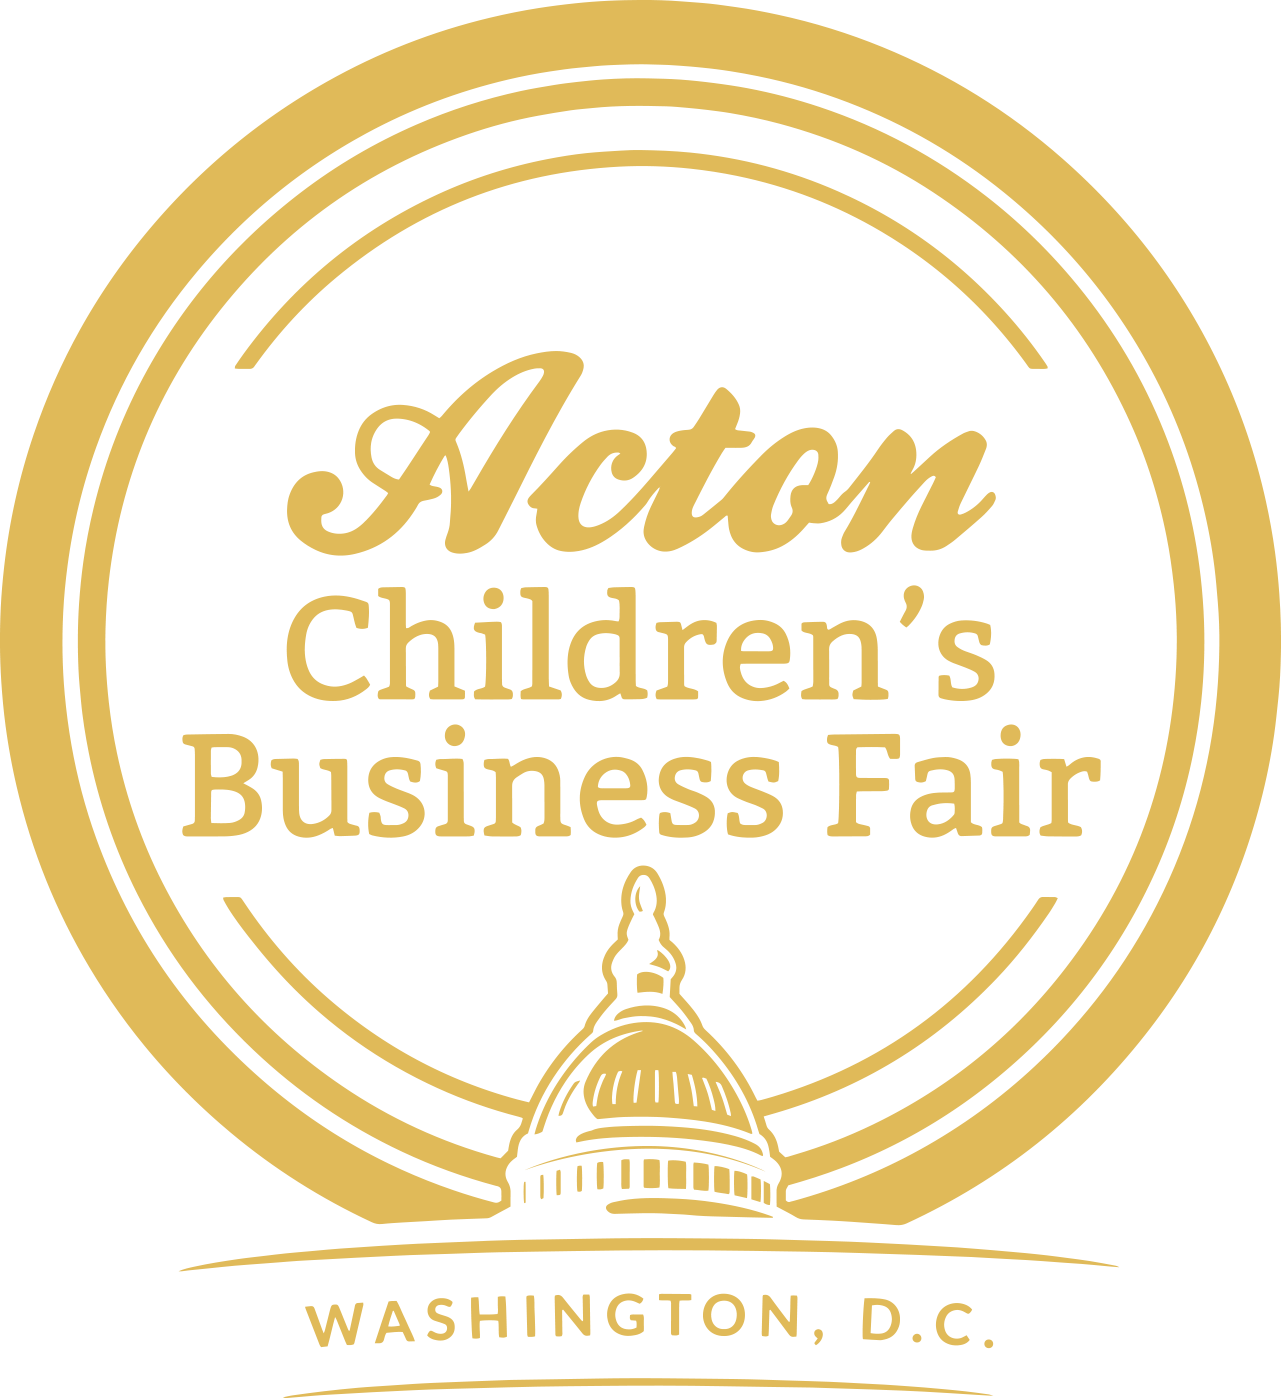 Acton Children's Business Fair of Washington, DC